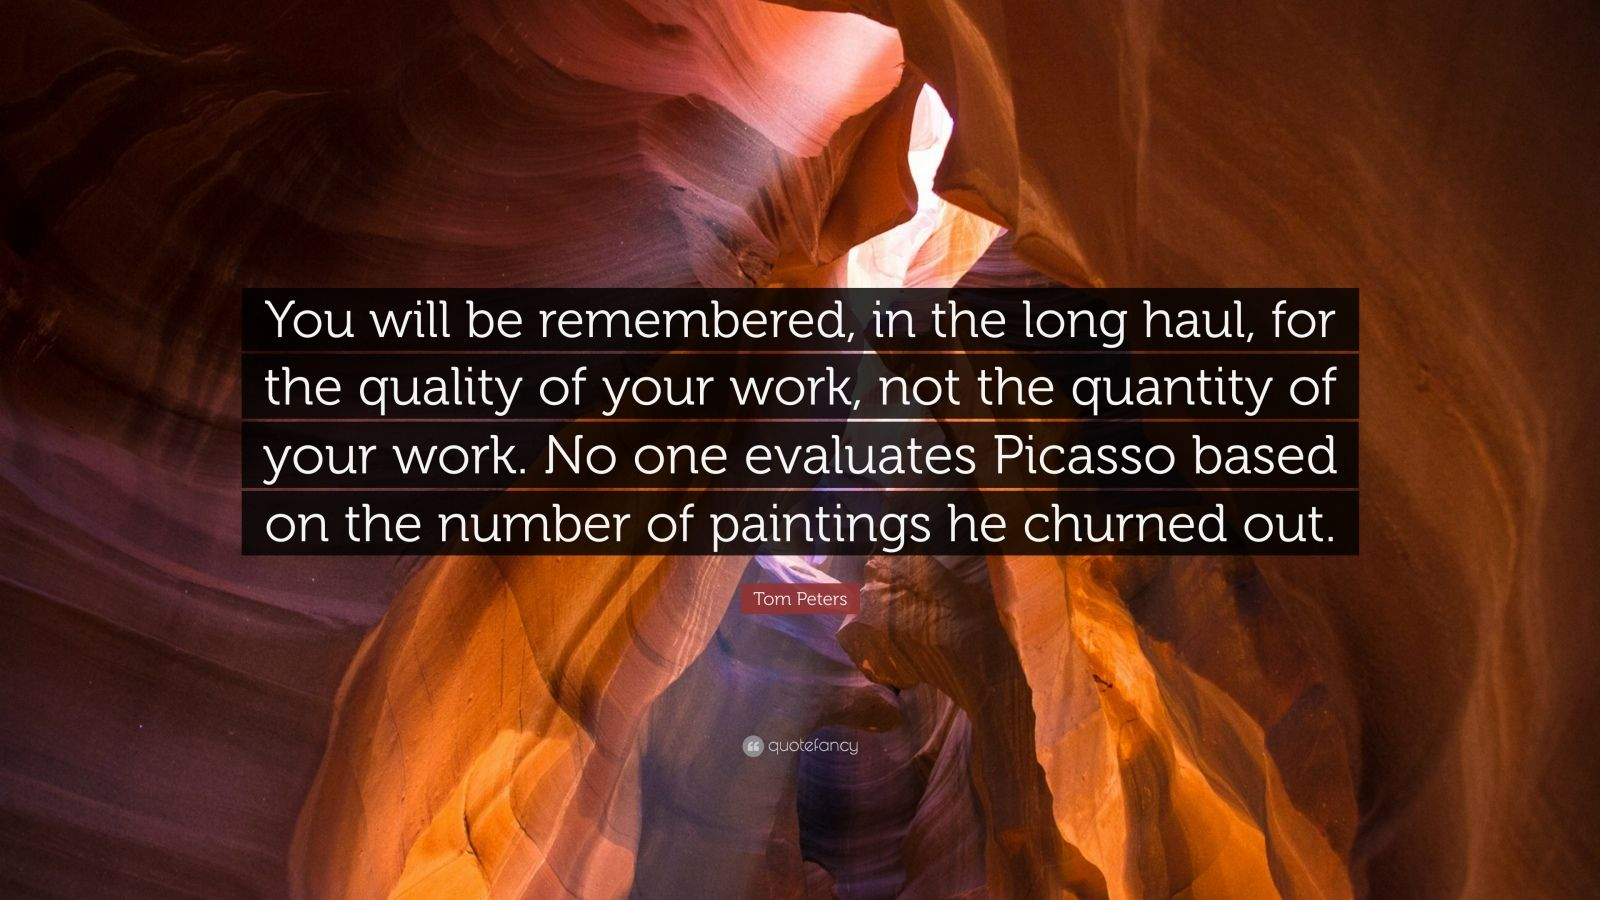 """Tom Peters Quote: """"You will be remembered, in the long haul, for the quality of your work, not the quantity of your work. No one evaluates Picasso based on the number of paintings he churned out."""""""